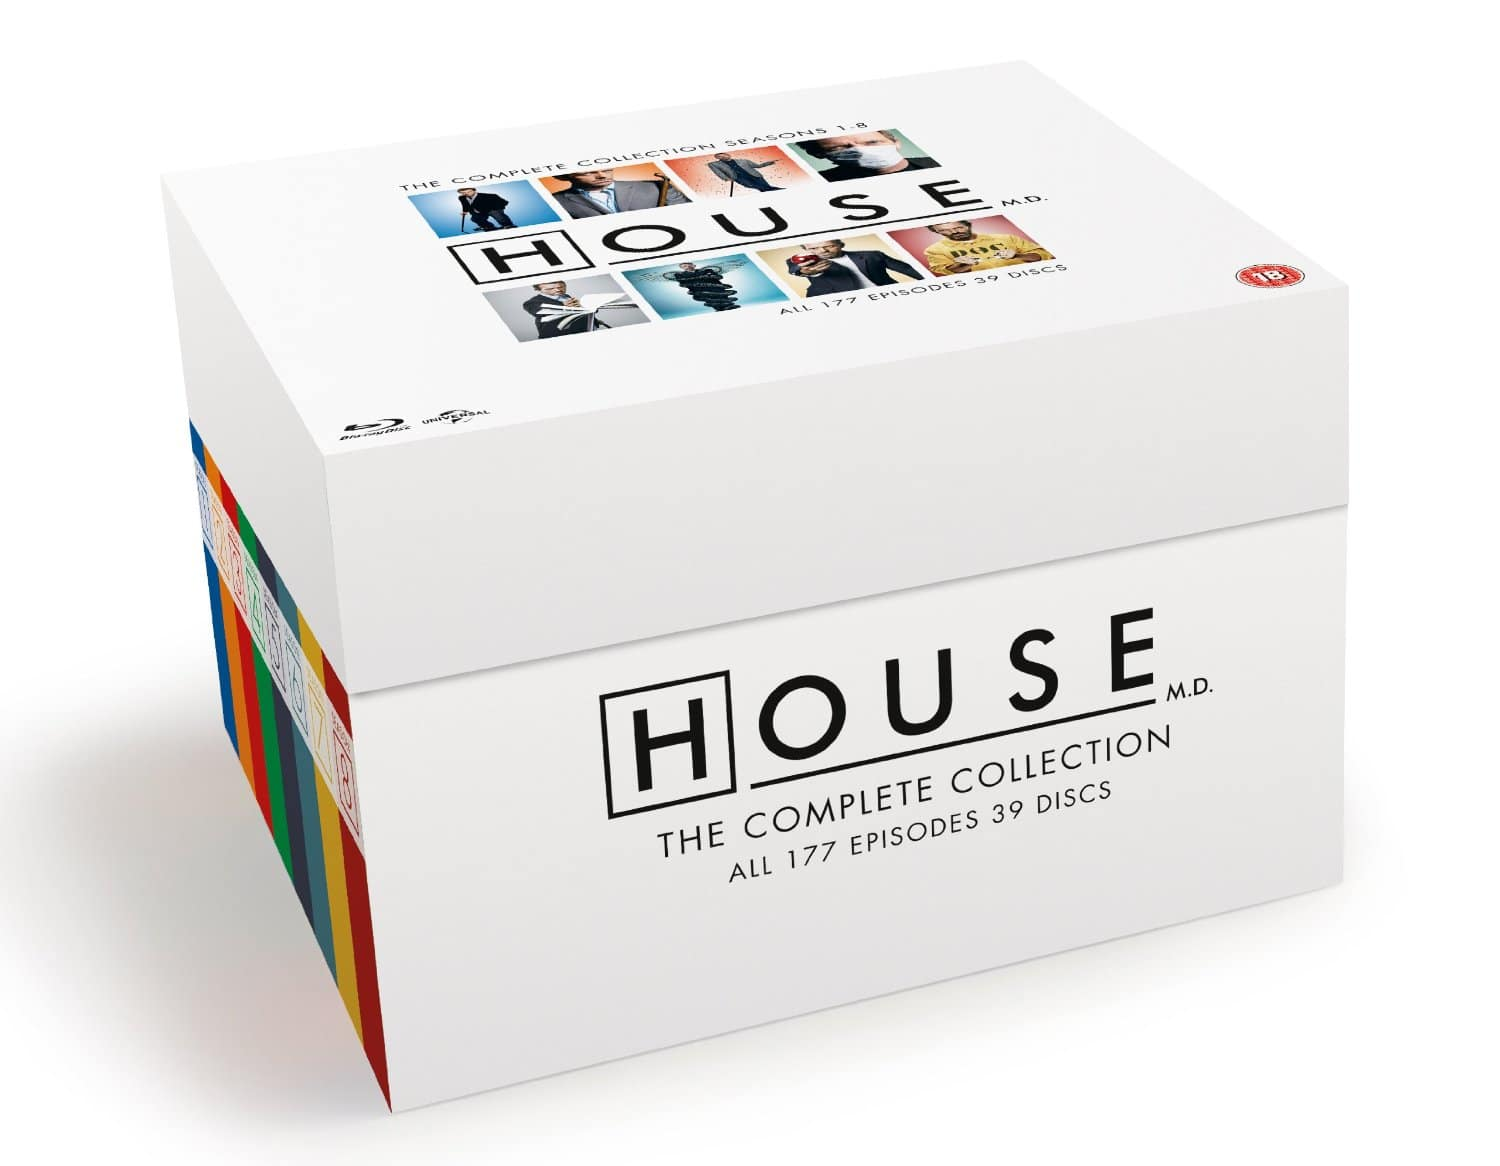 House M.D. Complete Collection (Seasons 1-8 - 39-Disc Box Set - Blu-ray) $50 Shipped